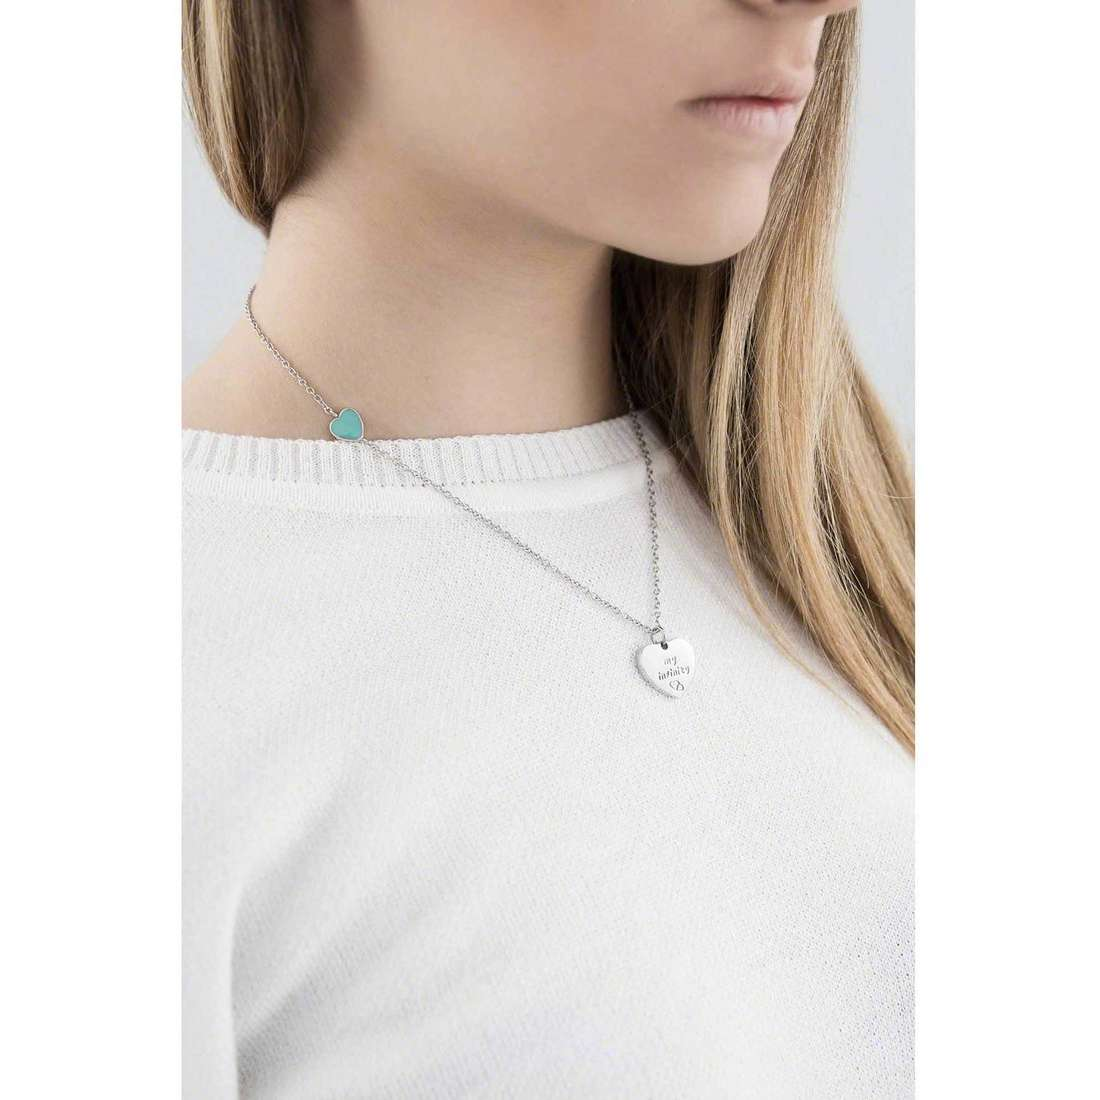 Marlù colliers Trendy femme 18CN023 indosso